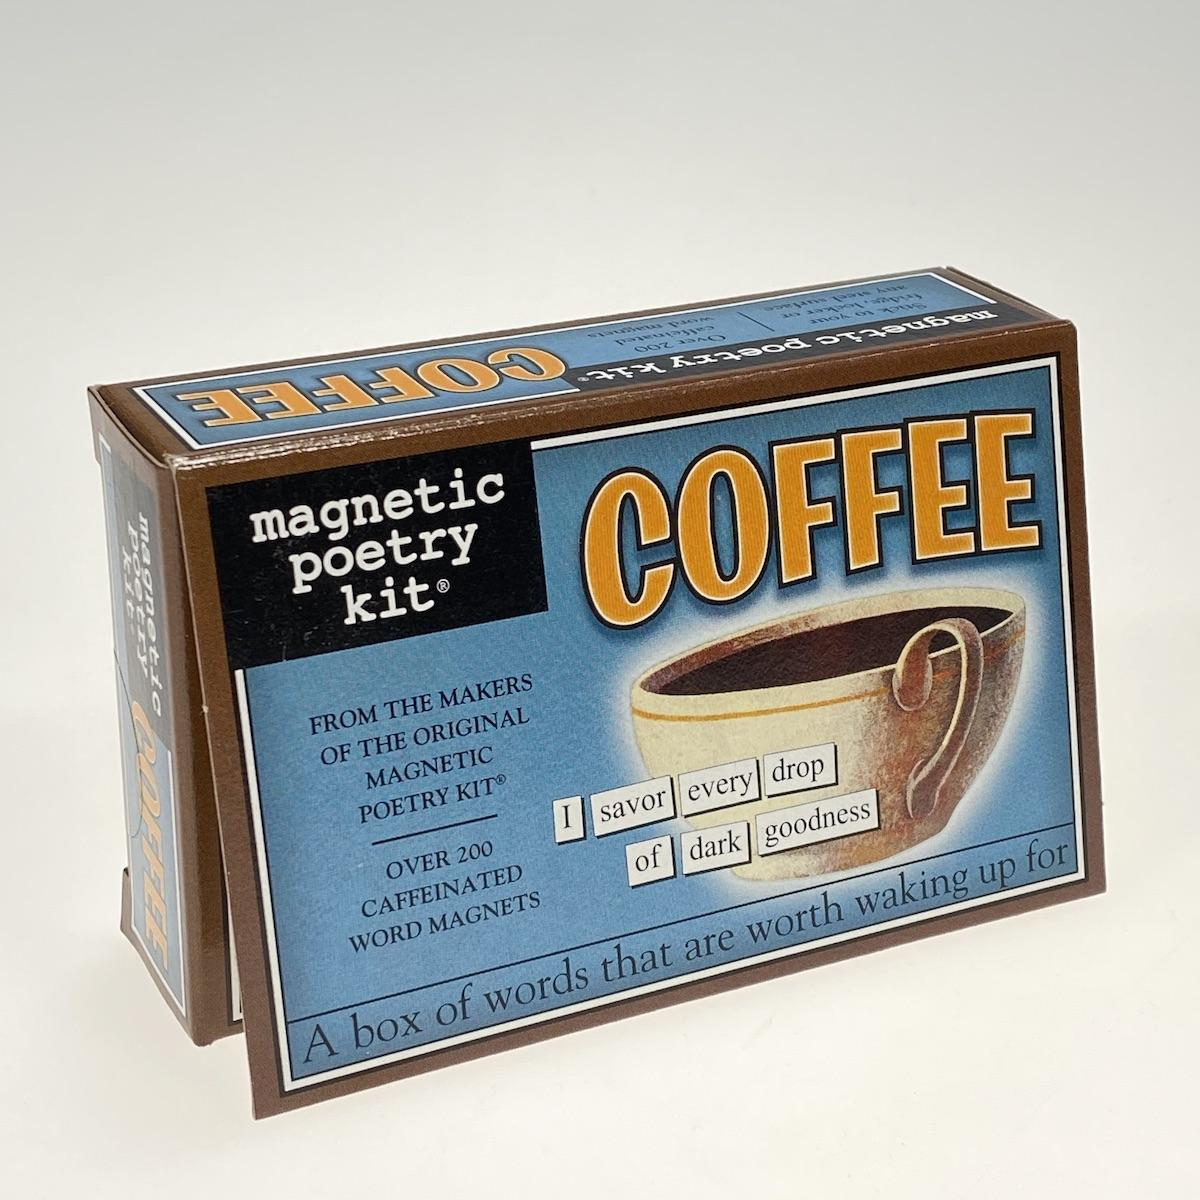 Magnetic Poetry Coffee